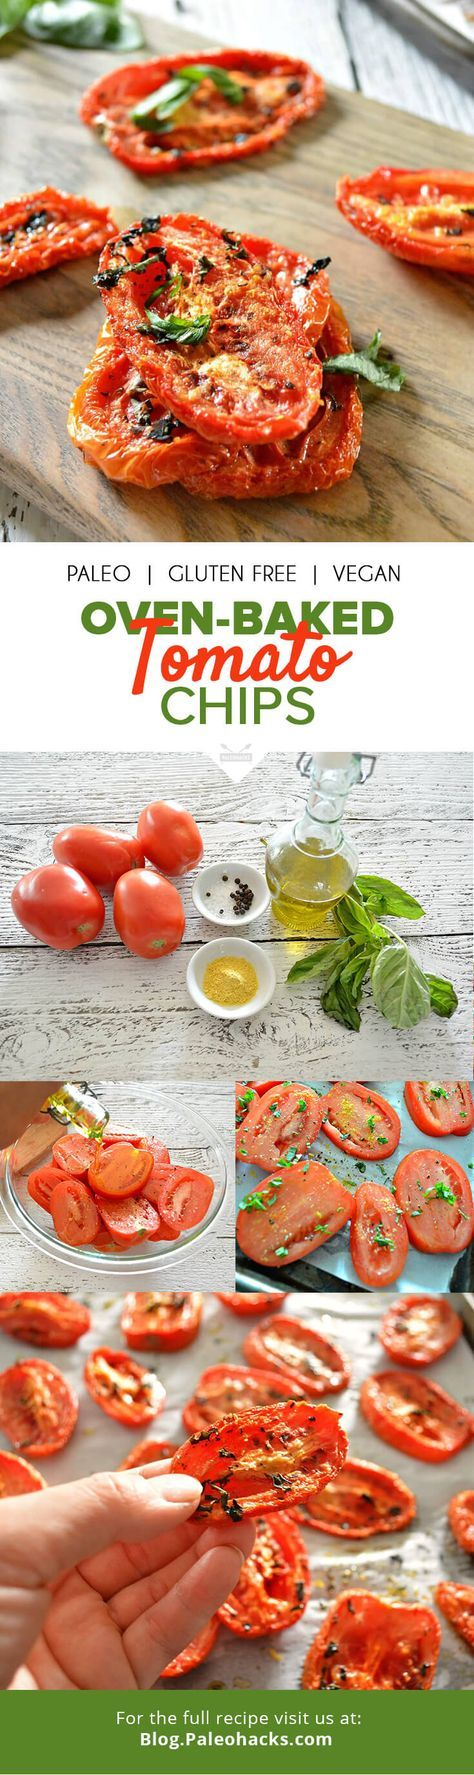 Transform ordinary tomatoes into sweet, crispy, bite-sized tomato chips that are full of antioxidants and bursting with rustic flavor. No dehydrator is needed for this oven-baked recipe. For the full recipe visit us here: http://paleo.co/tomatochipsrcp